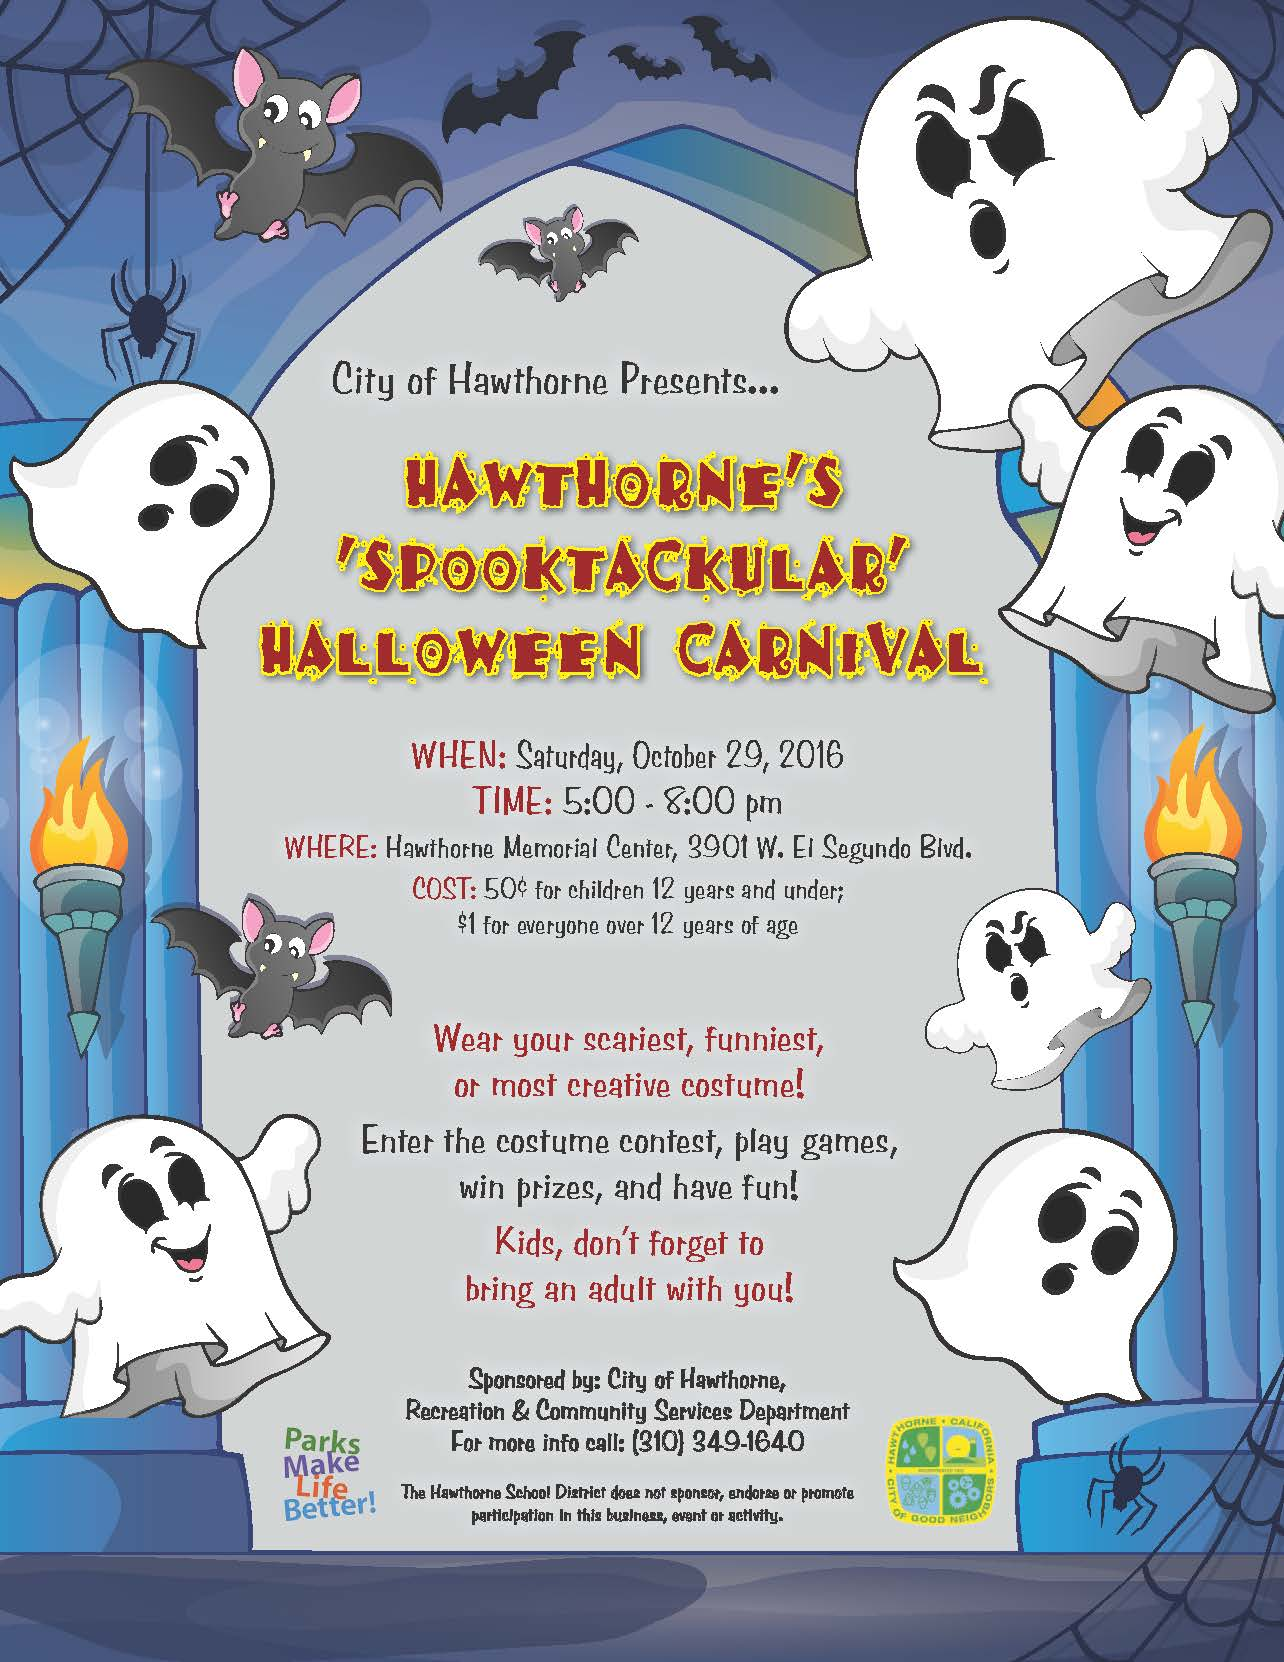 rec_events-Halloween Carnival2016_Page_1.jpg